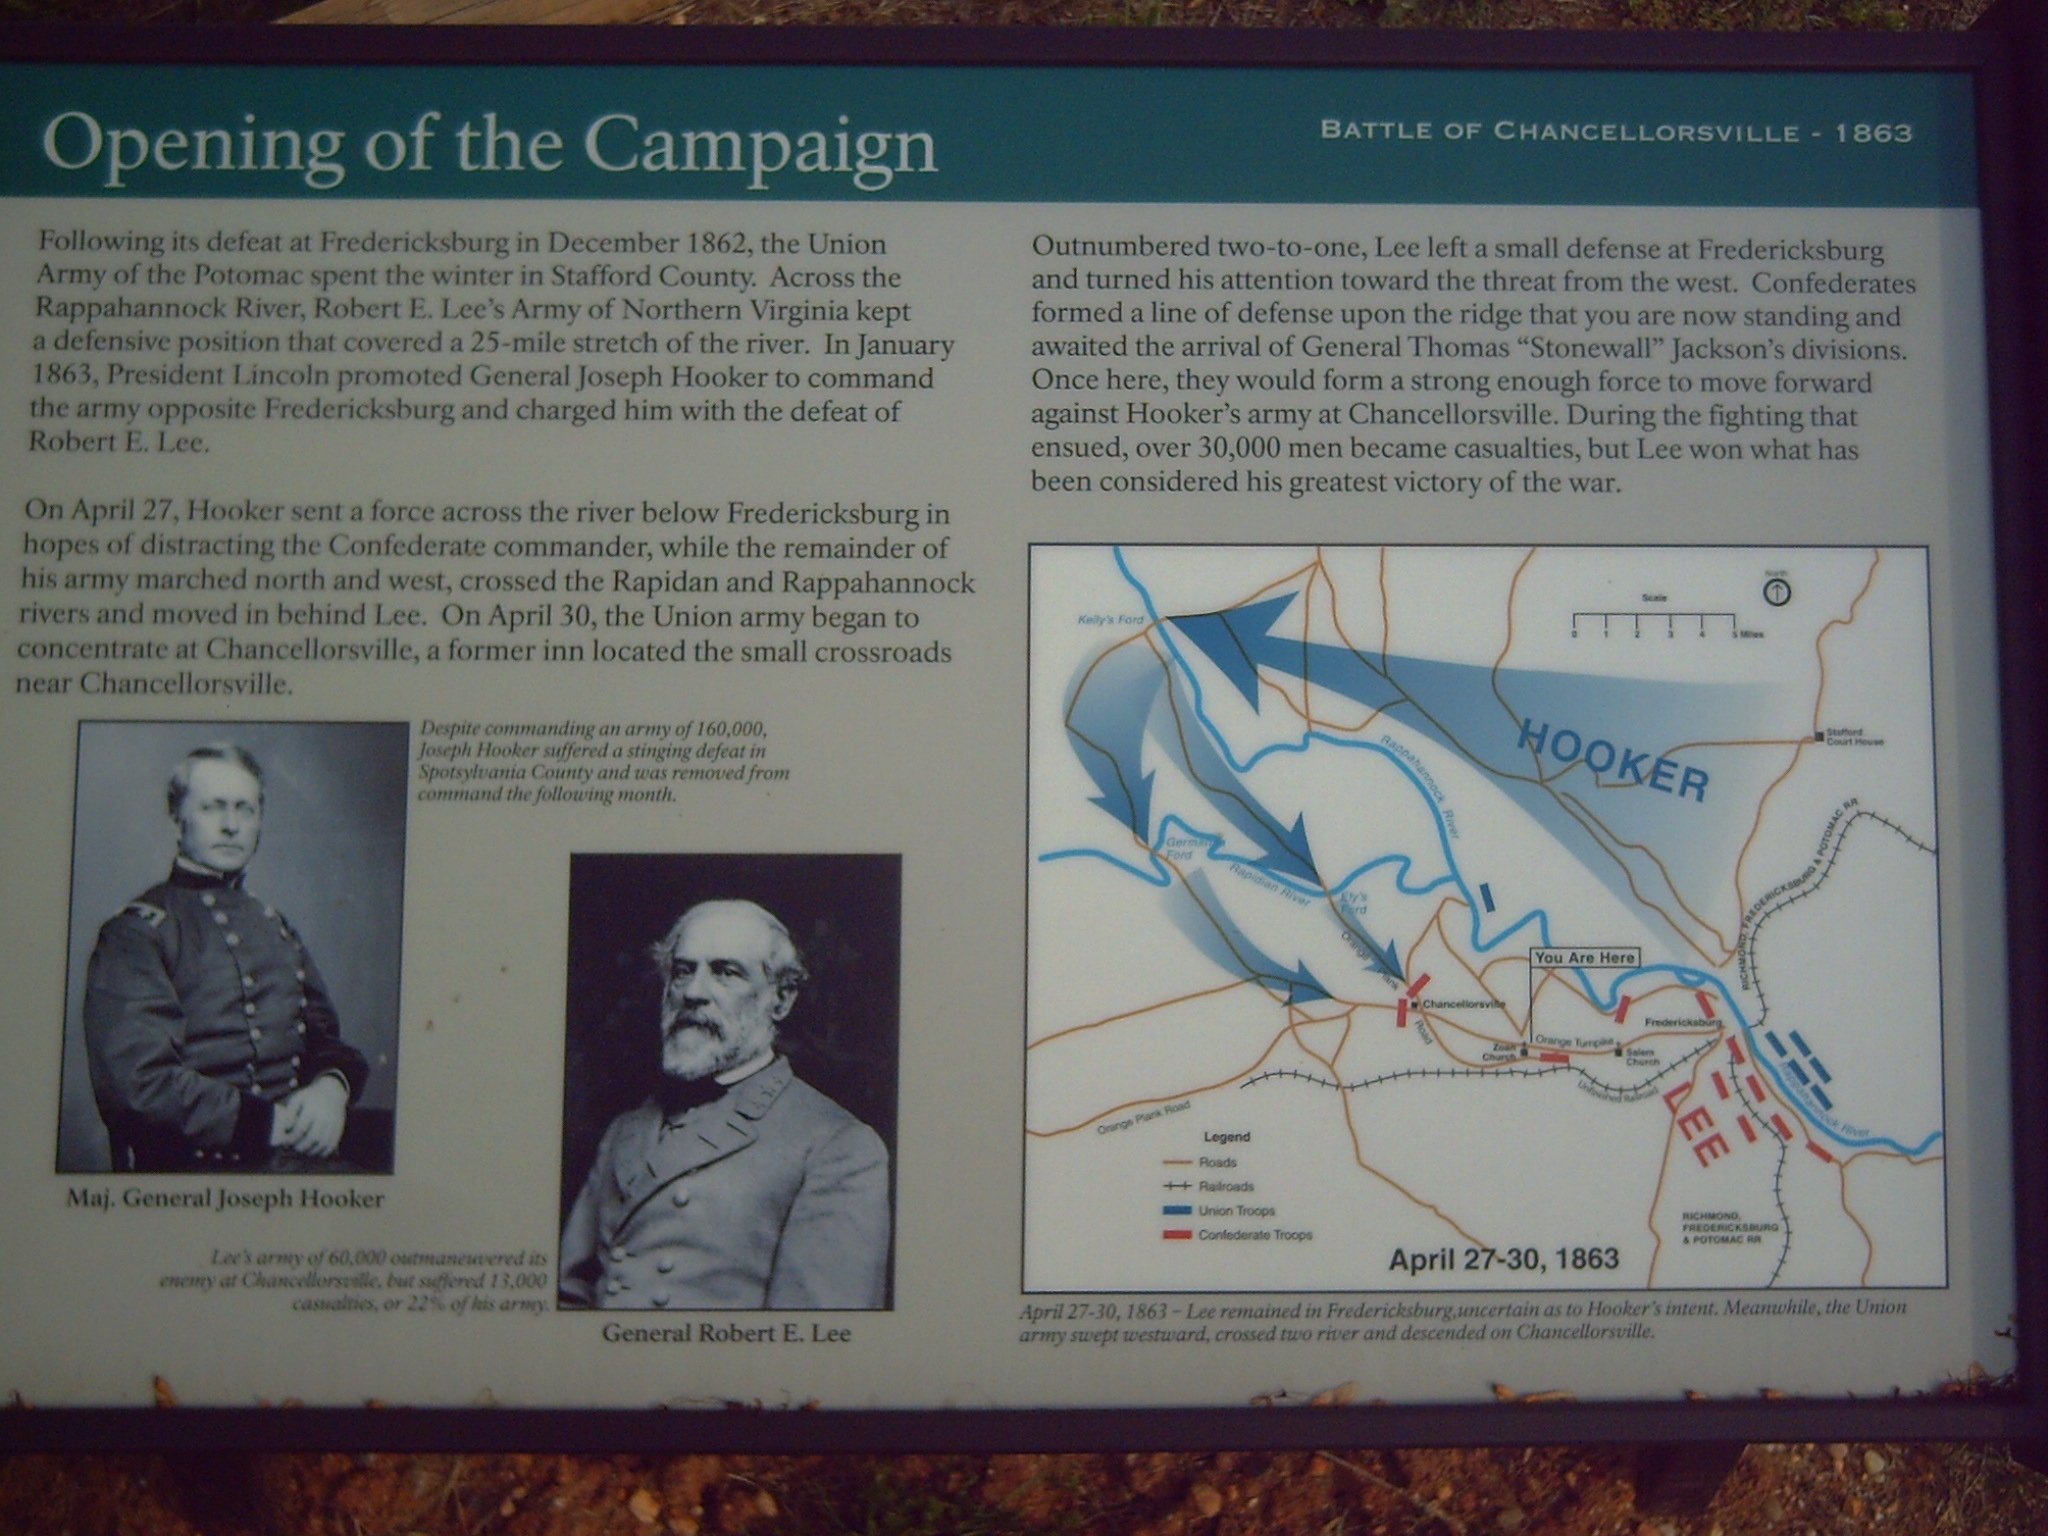 Opening of the Campaign Marker